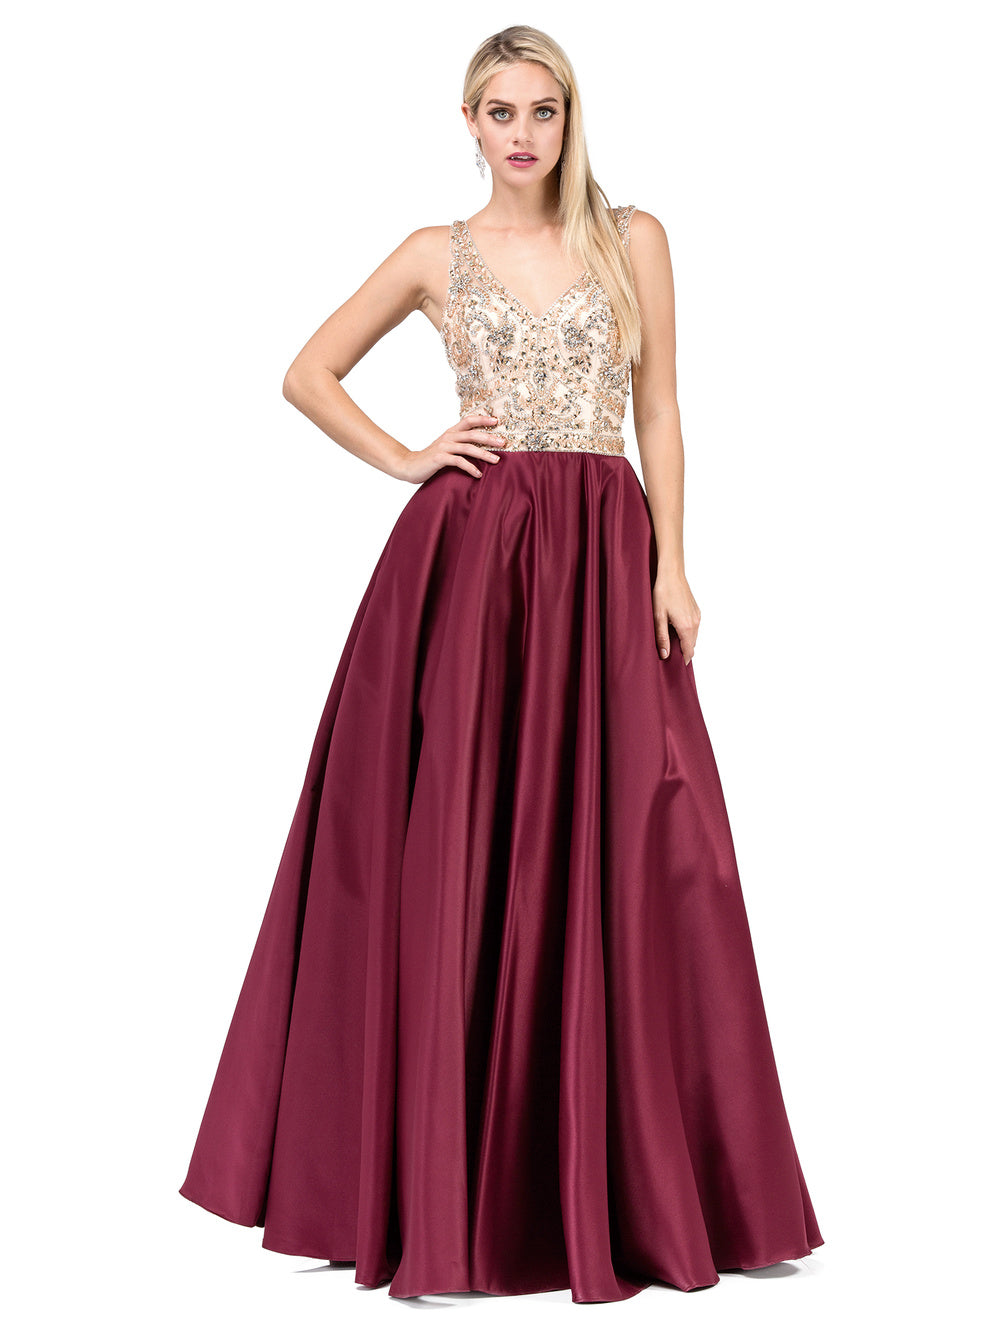 DQ 2416 - A-Line Prom Gown with Bead Embellished V-Neck Bodice & Satin Skirt - Diggz Prom